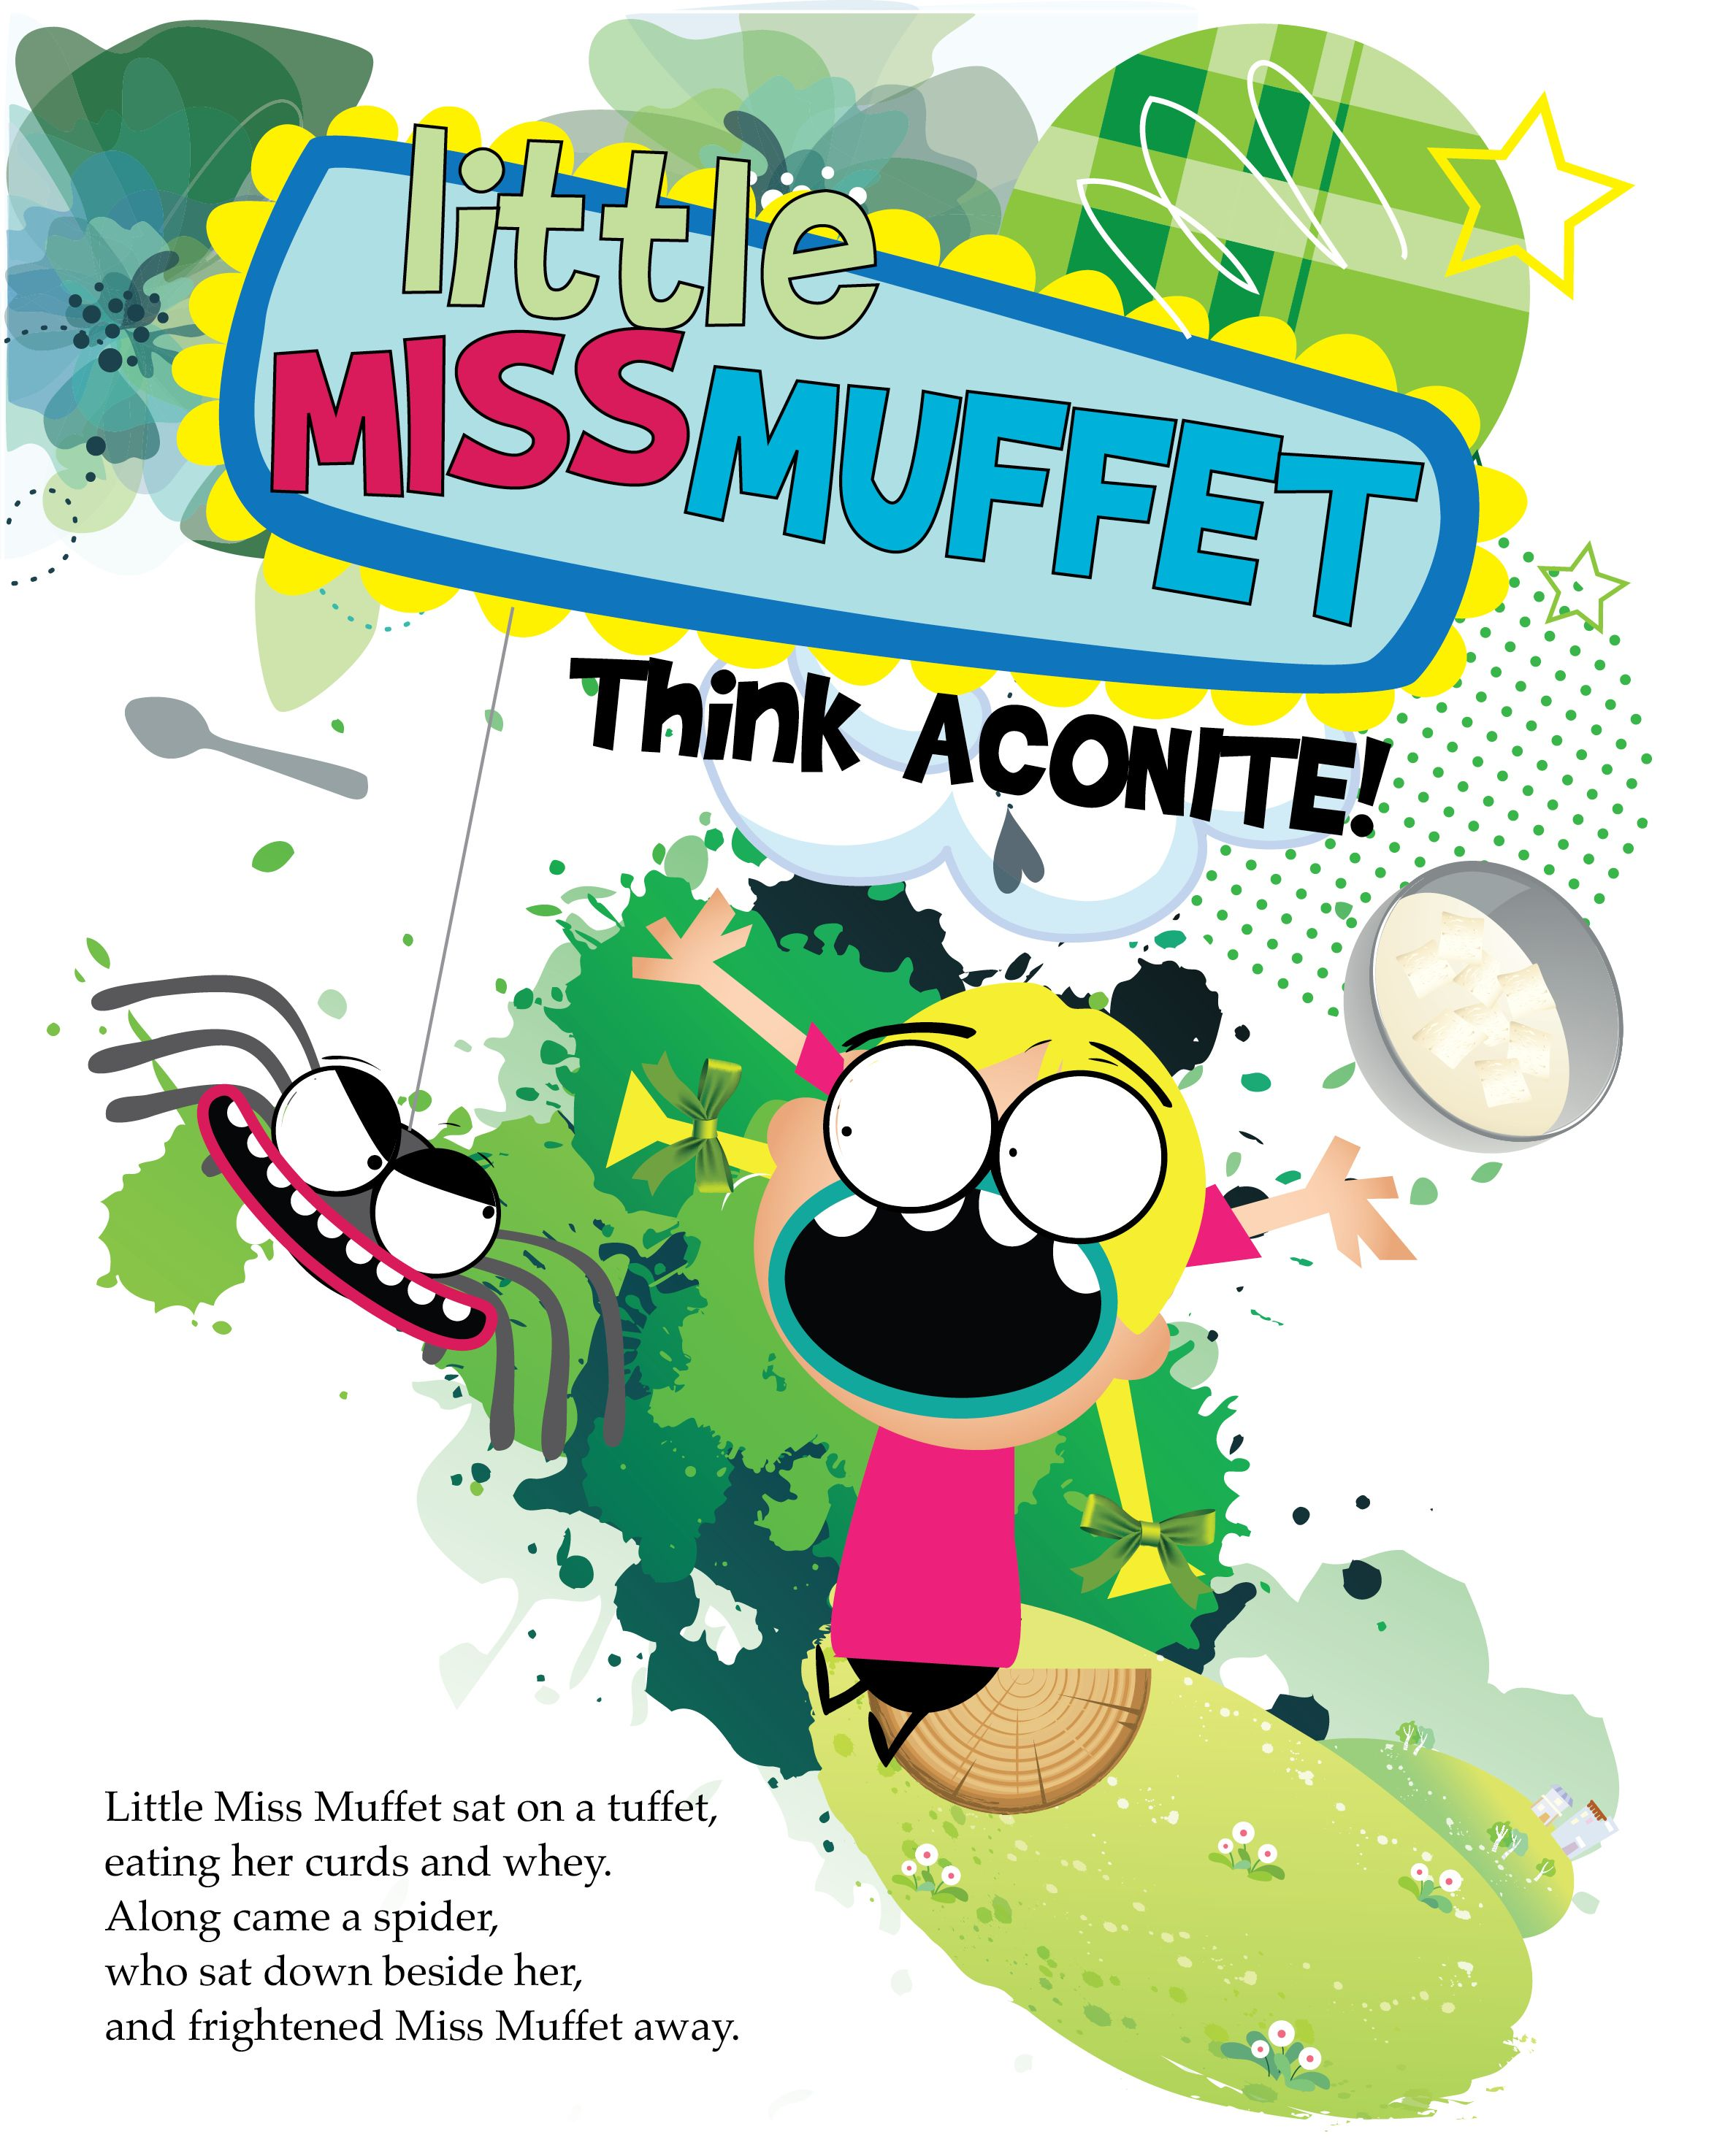 Little Miss Muffet Illustration Created For The Book